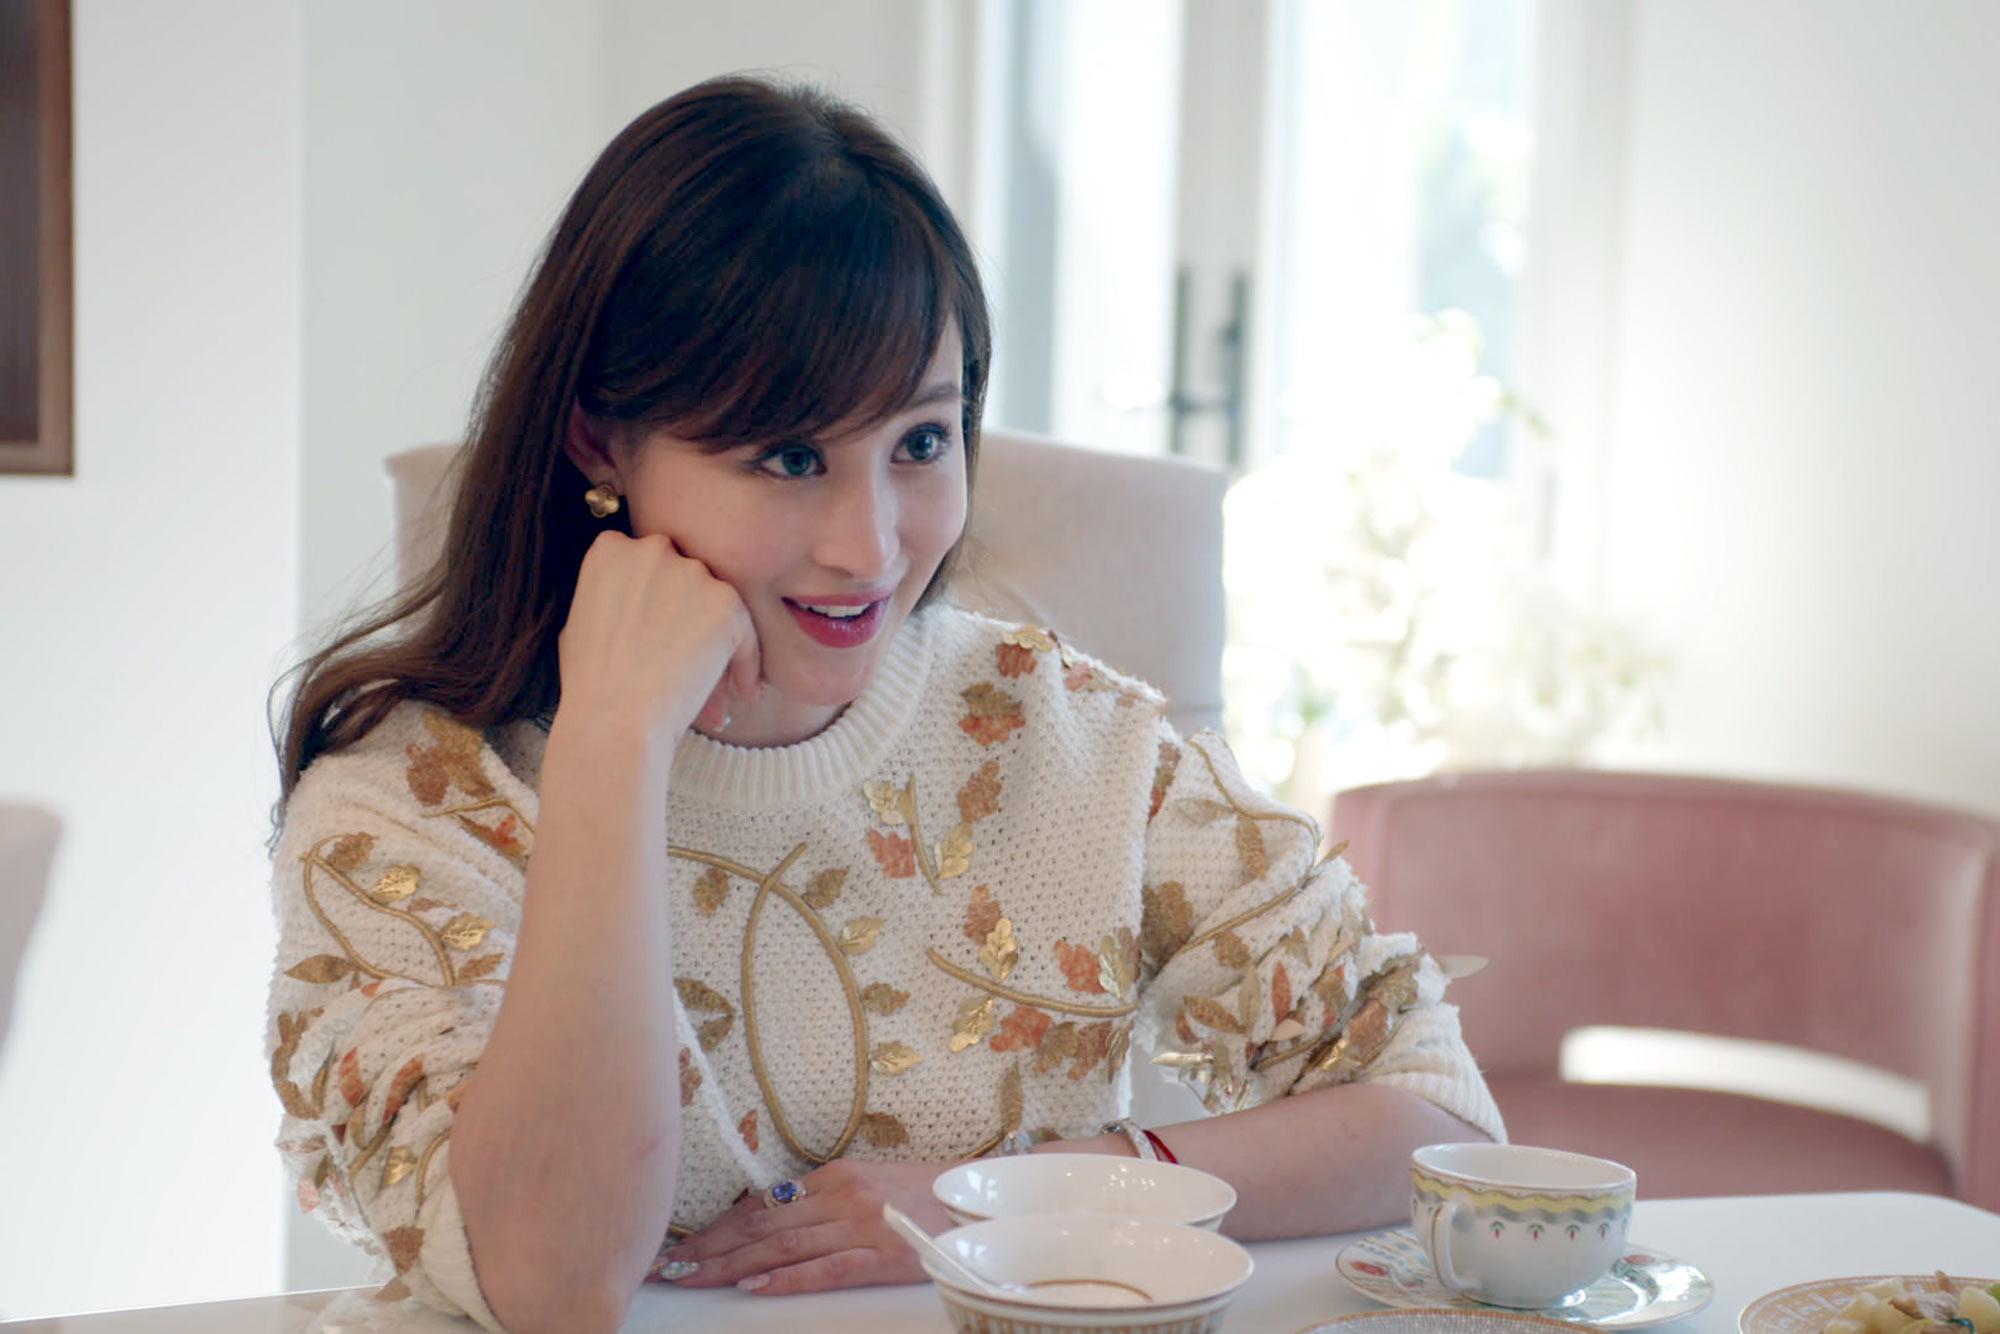 Cherie Chan Net worth, Age, Nationality and Her Love Life